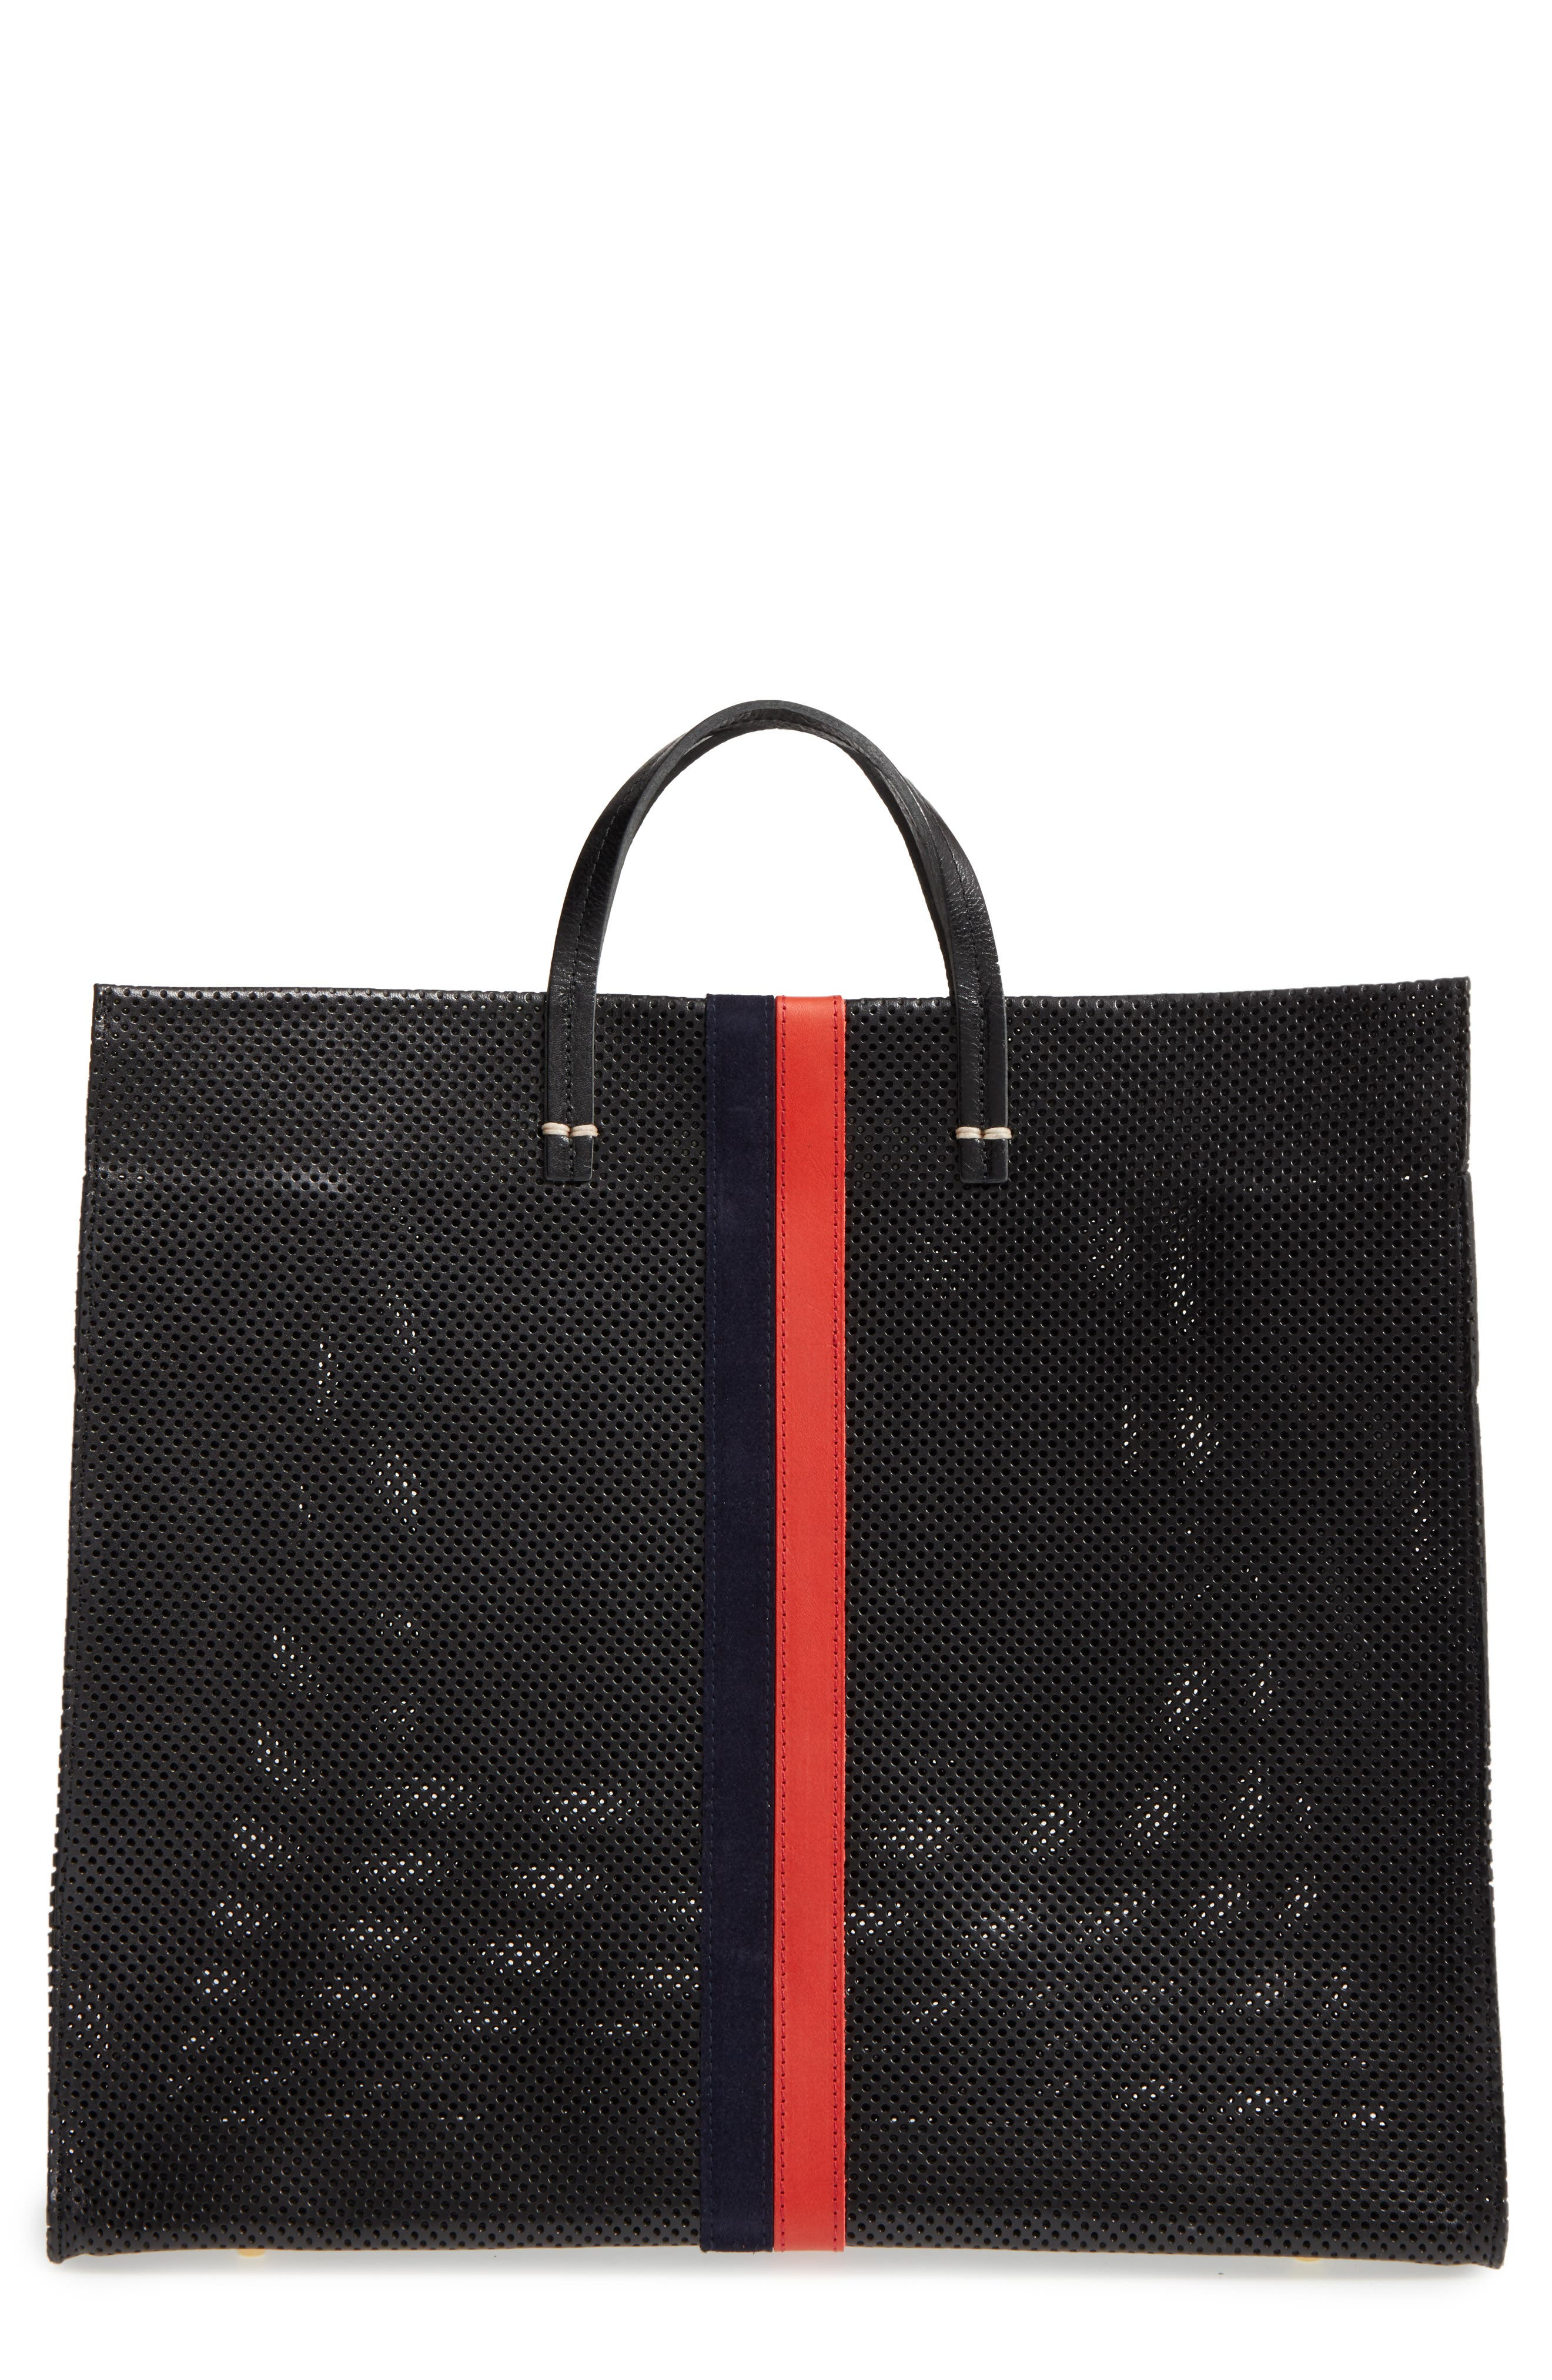 Simple Perforated Leather Tote,                             Main thumbnail 1, color,                             001